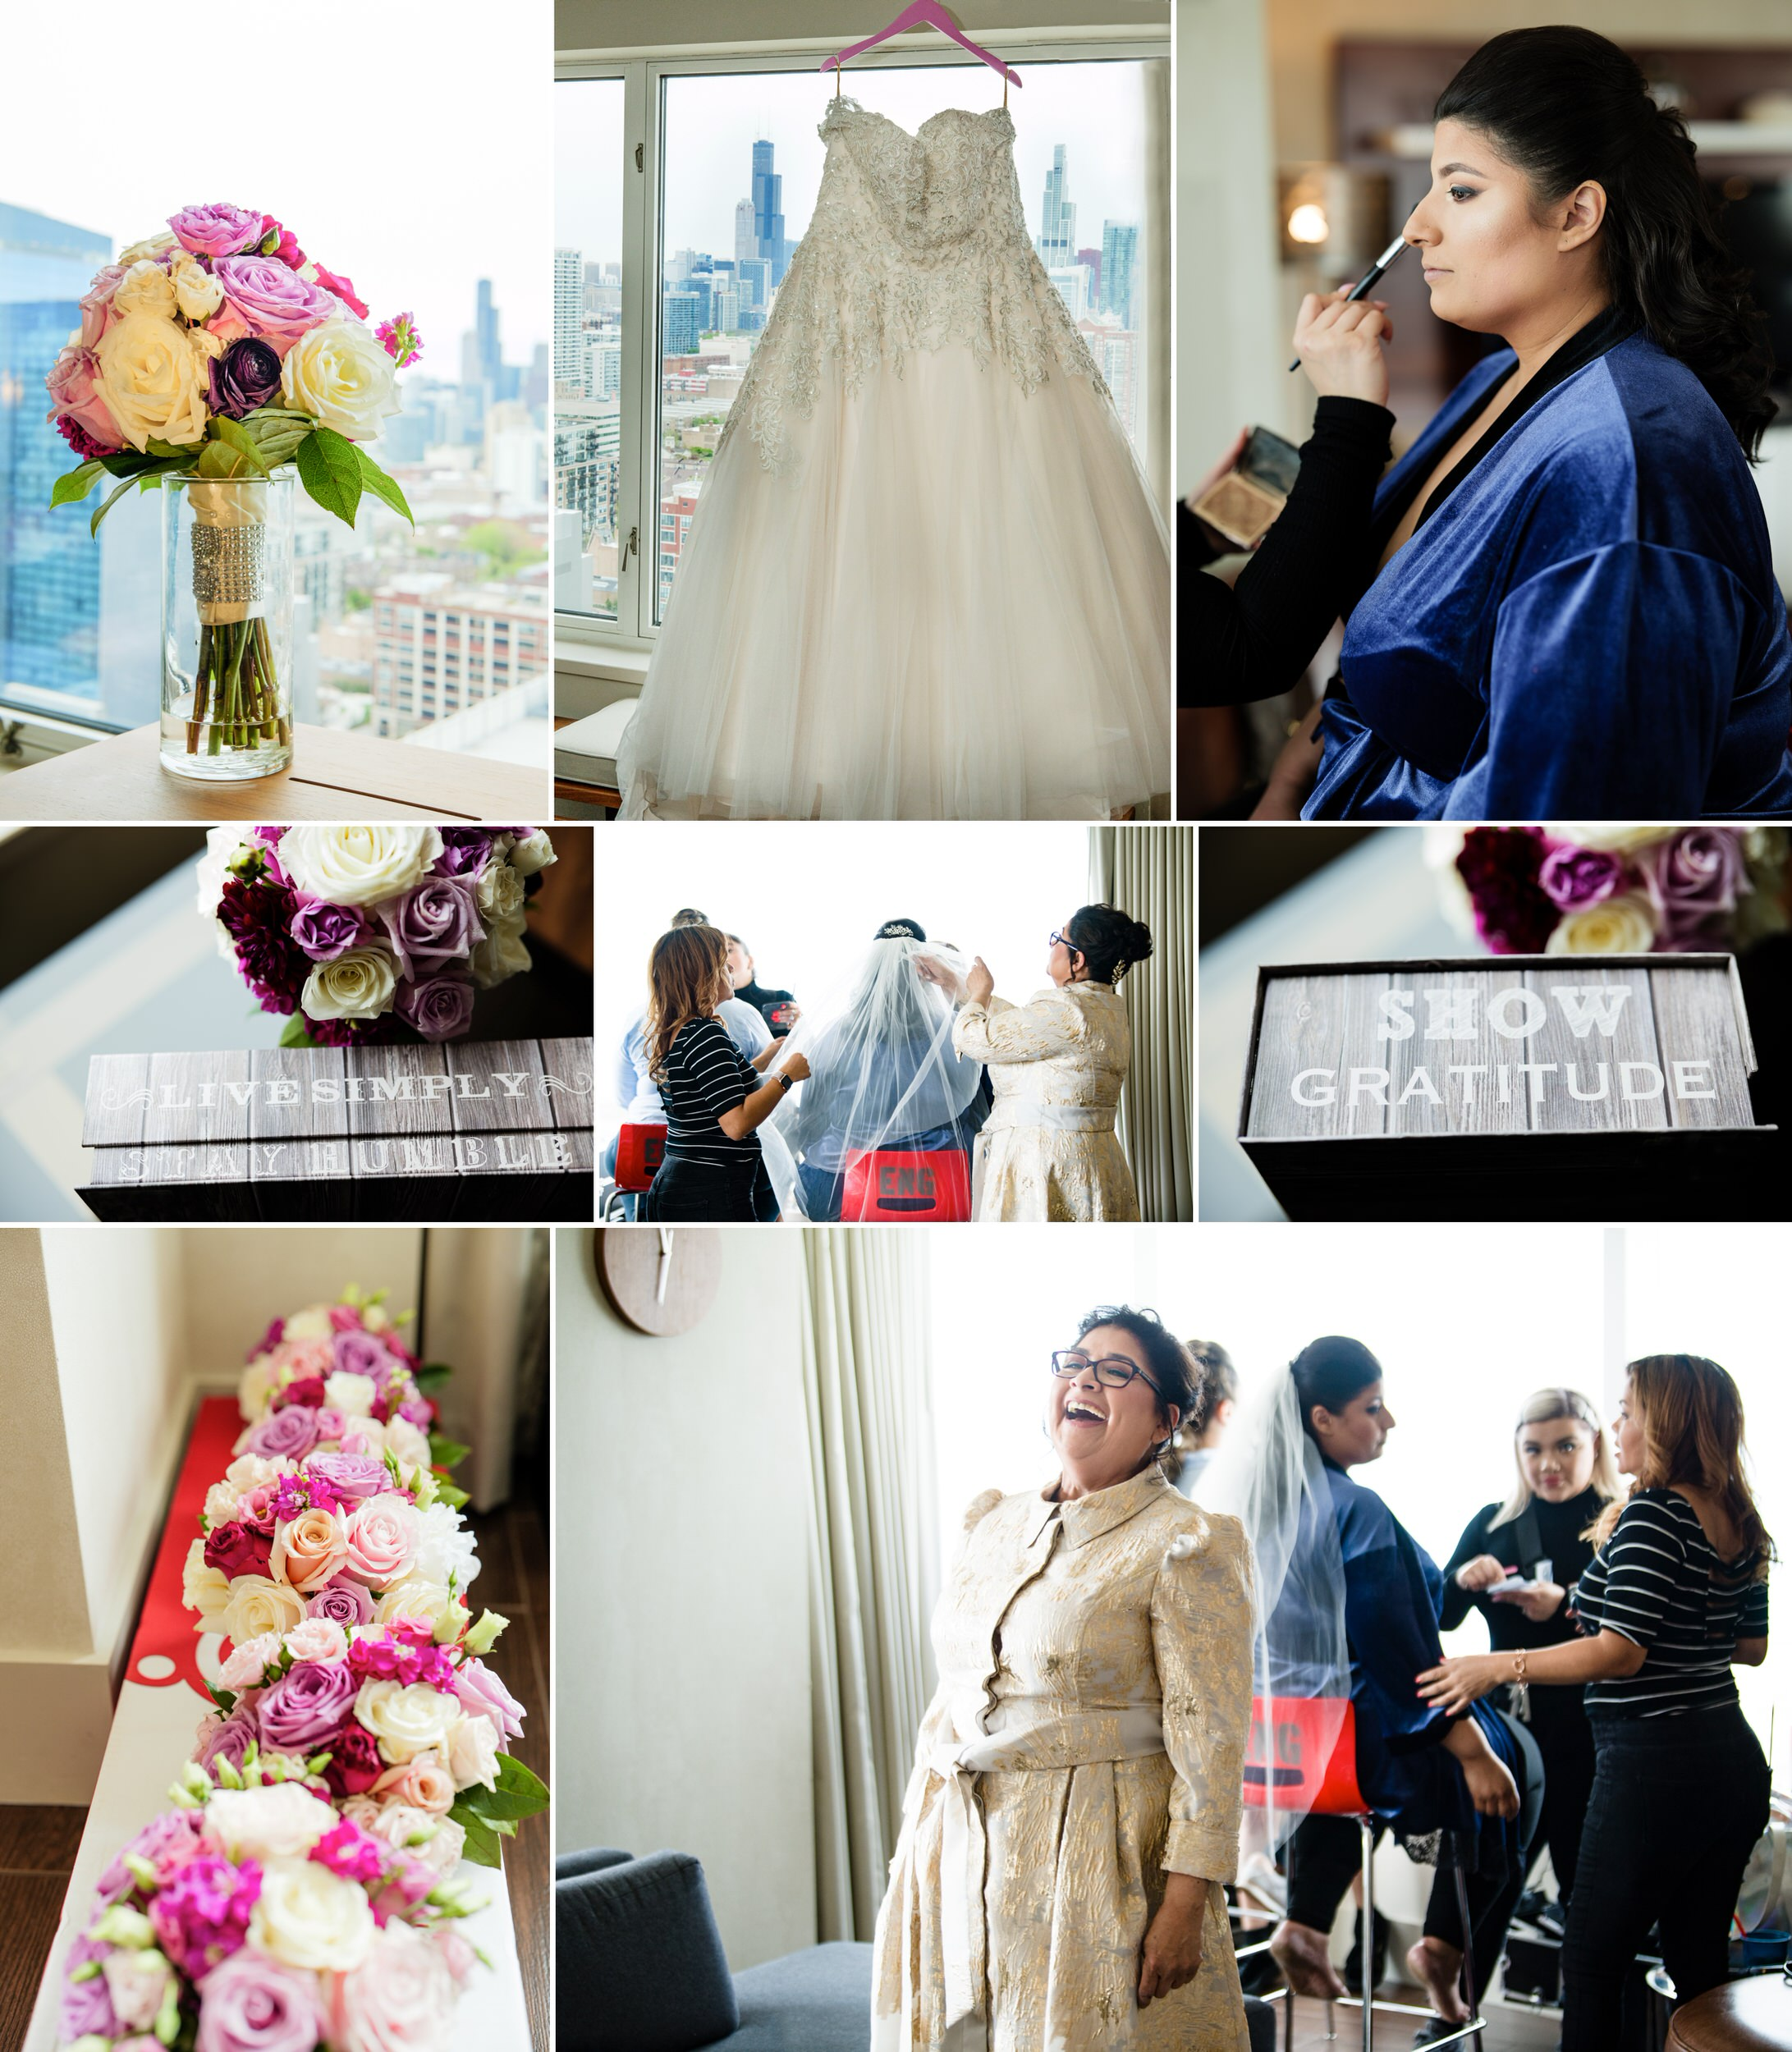 Bridal Prep at Hyatt Regency McCormick Place in Chicago.